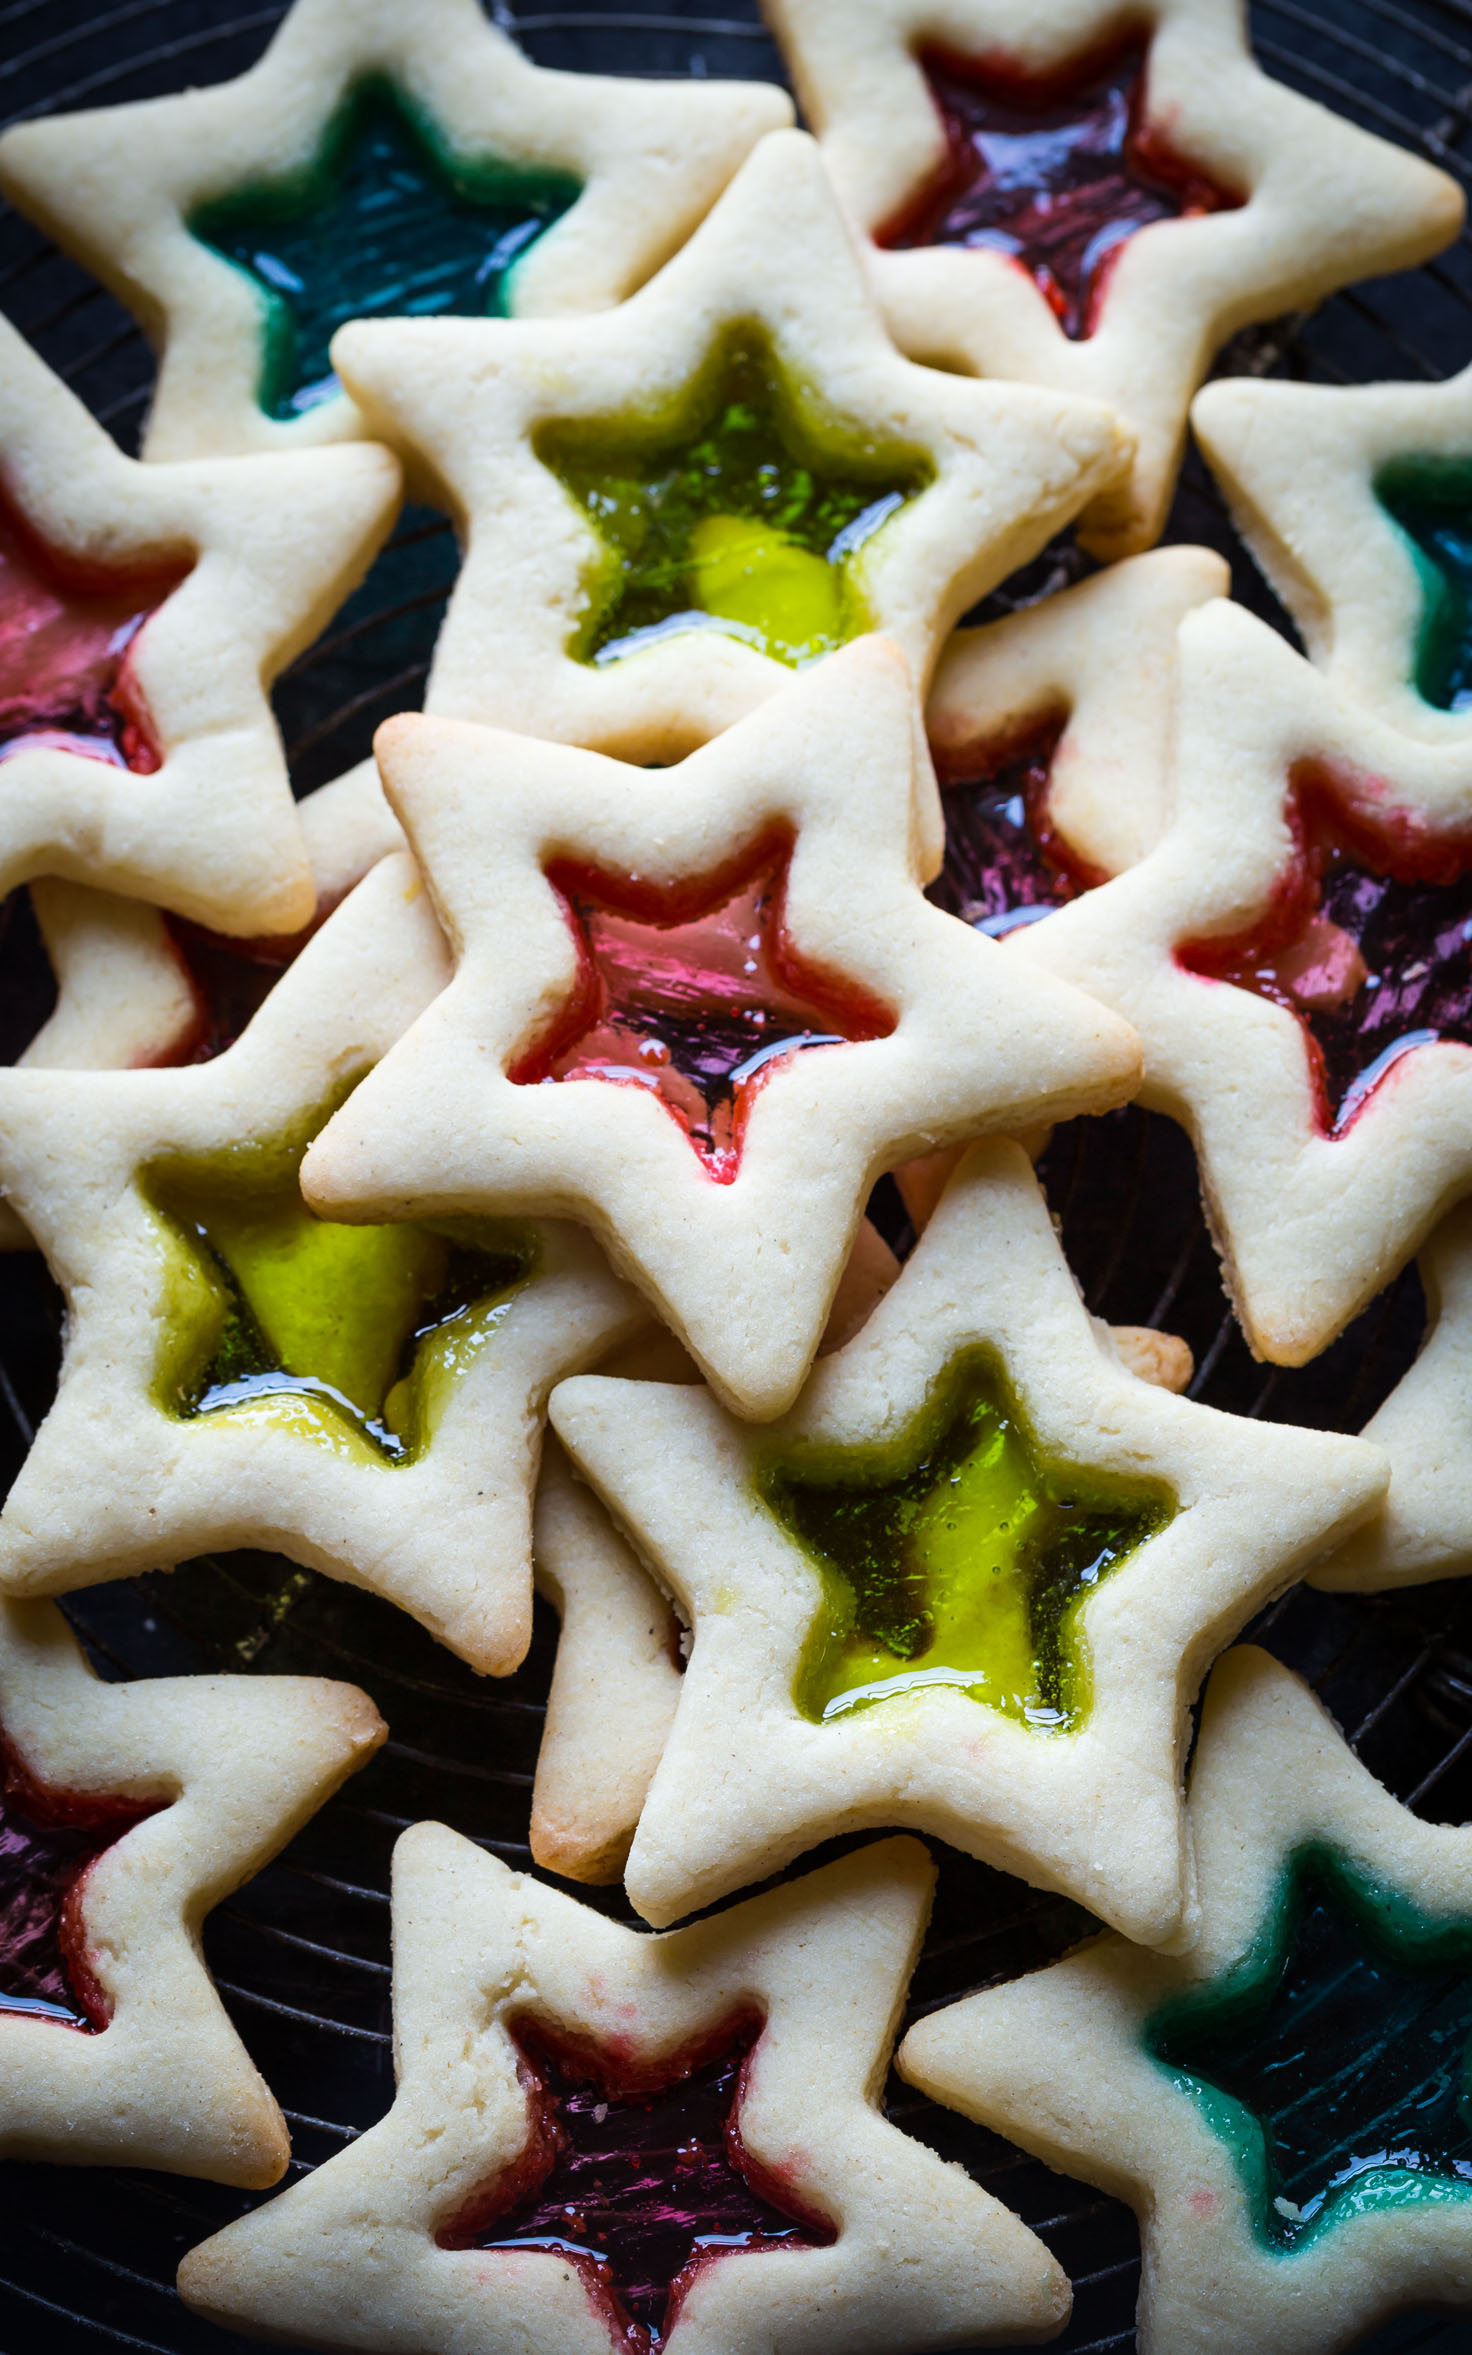 Decoart blog entertaining festive christmas cookie recipes for Stained glass cookie recipe